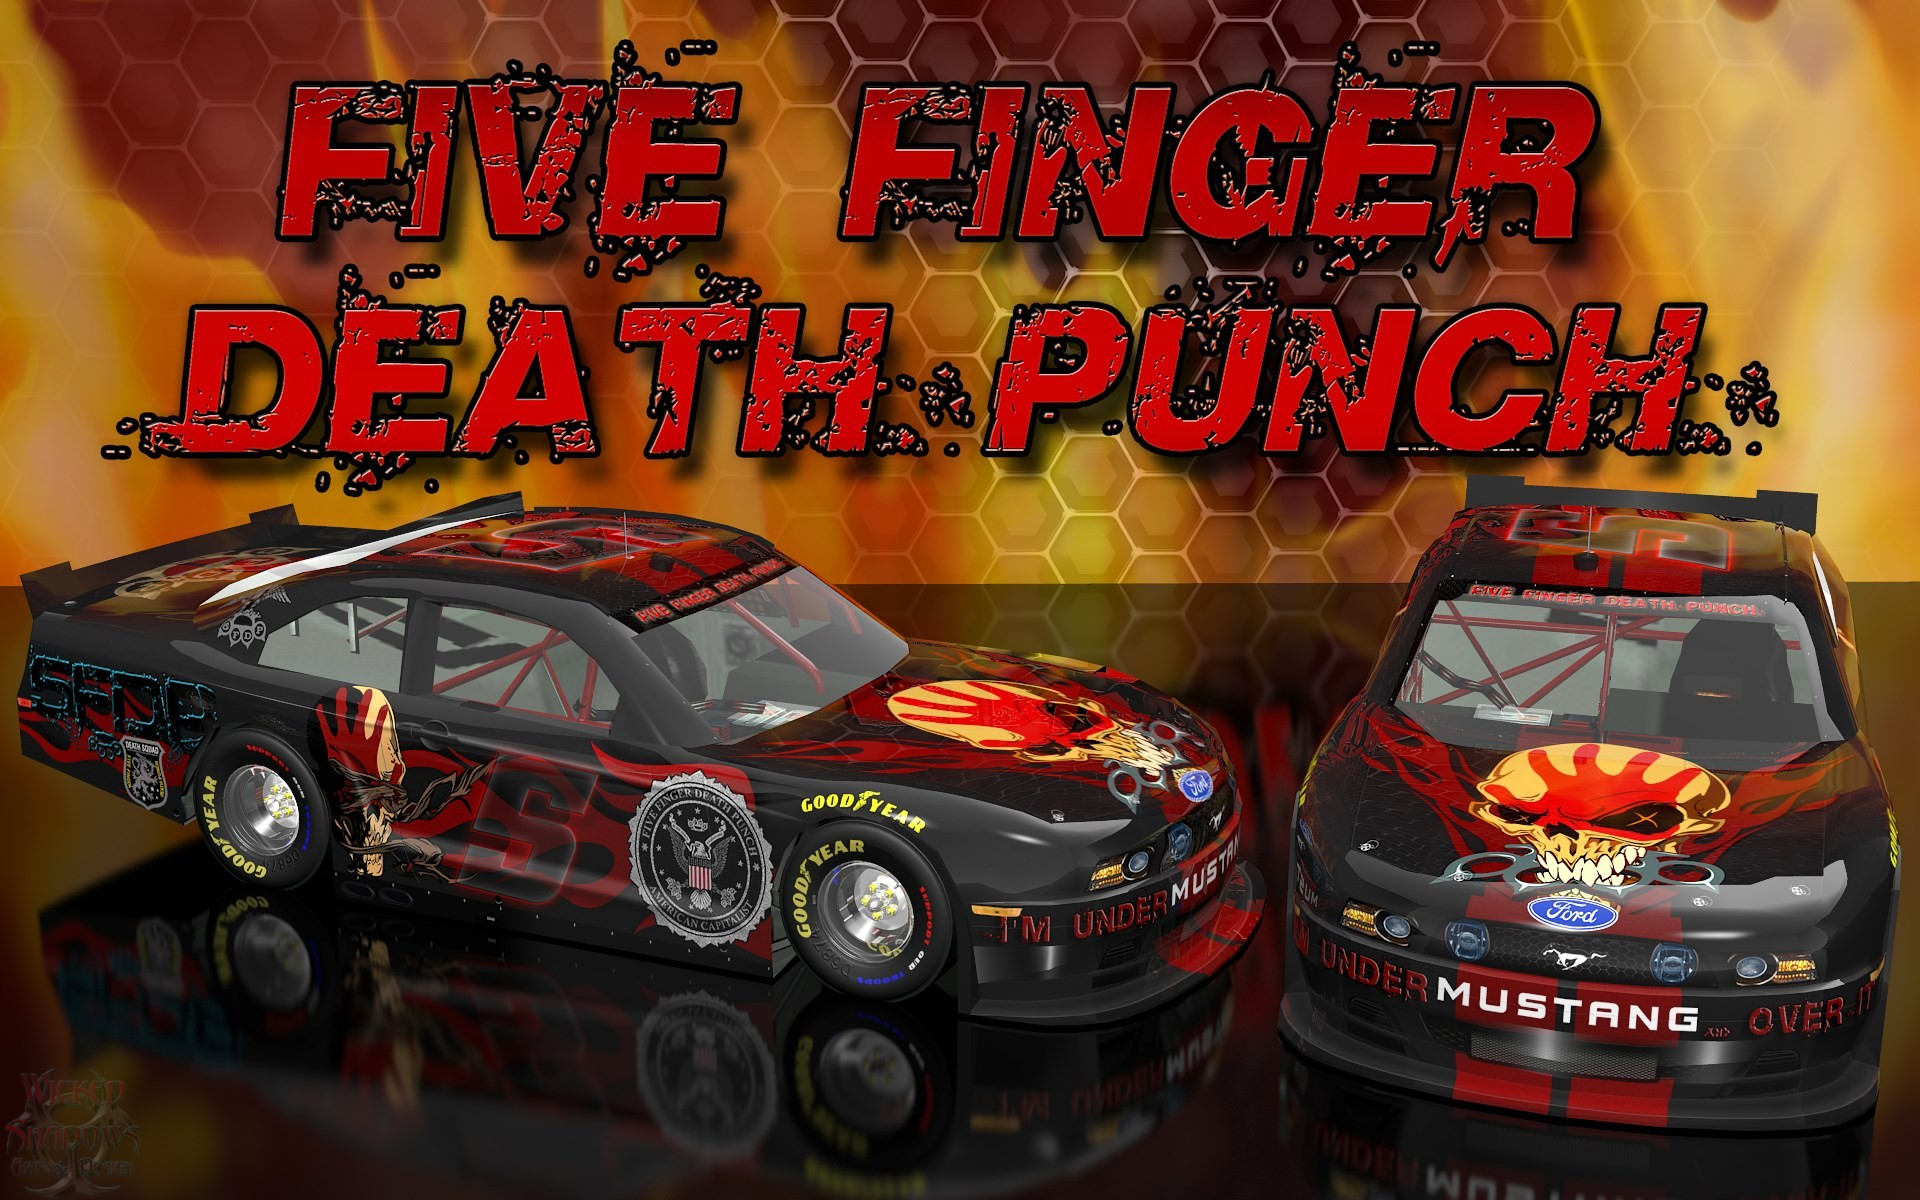 1920x1200 wallpapers free five finger death punch